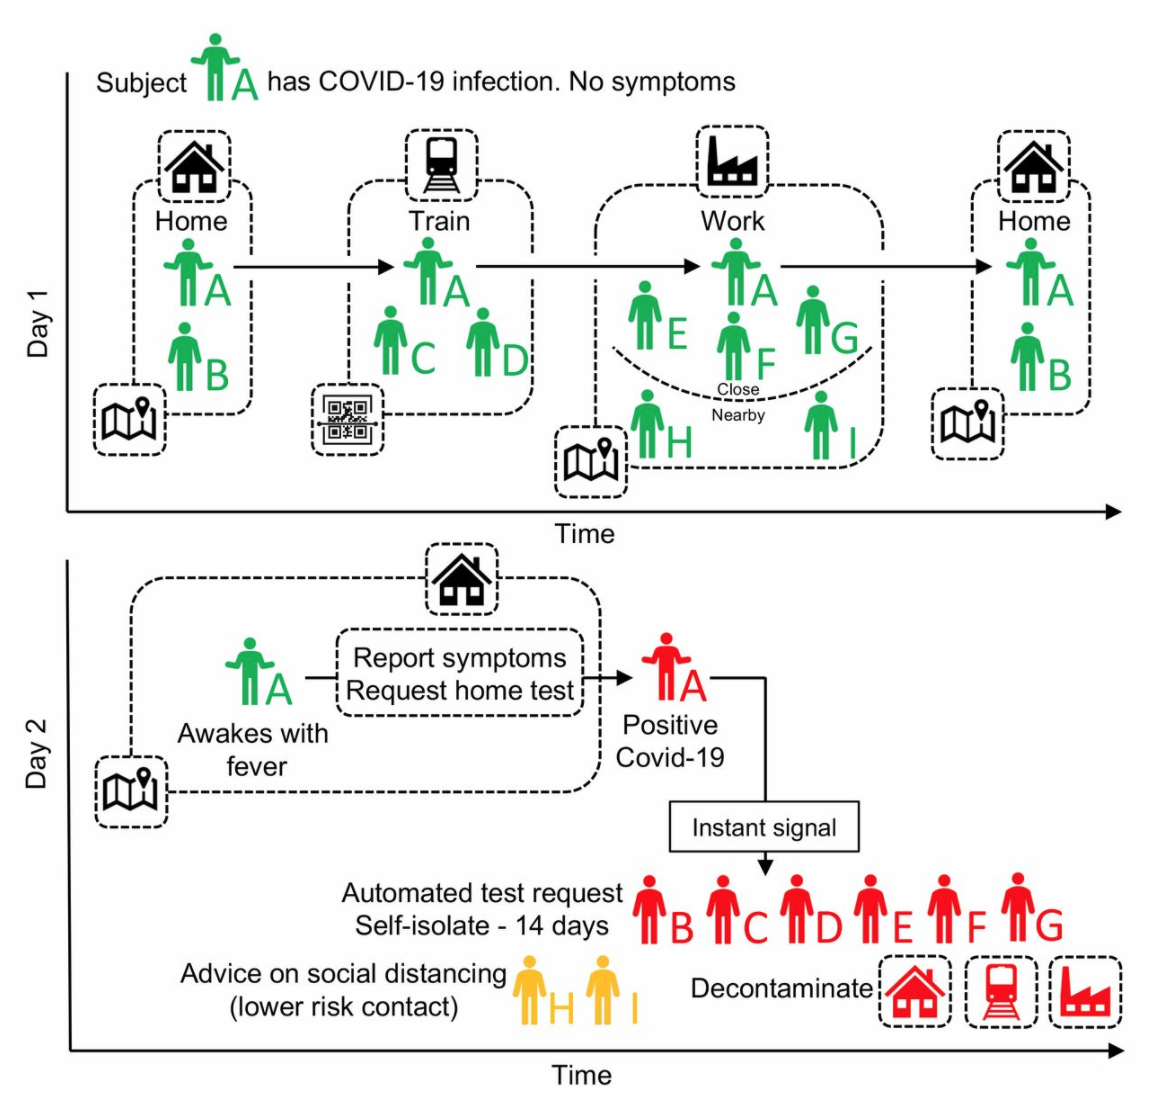 Contacts of individual A (and all individuals using the app) are traced using GPS co-localisations with other App users, supplemented by scanning QR-codes displayed on high-traffic public amenities where GPS is too coarse. Individual A requests a SARS-COV-2 test (using the app) and their positive test result triggers an instant notification to individuals who have been in close contact. The App advises isolation for the case (individual A) and quarantine of their contacts. Source: Quantifying SARS-CoV-2 transmission suggests epidemic control with digital contact tracing, Luca Ferretti et al, Science 31 Mar 2020: